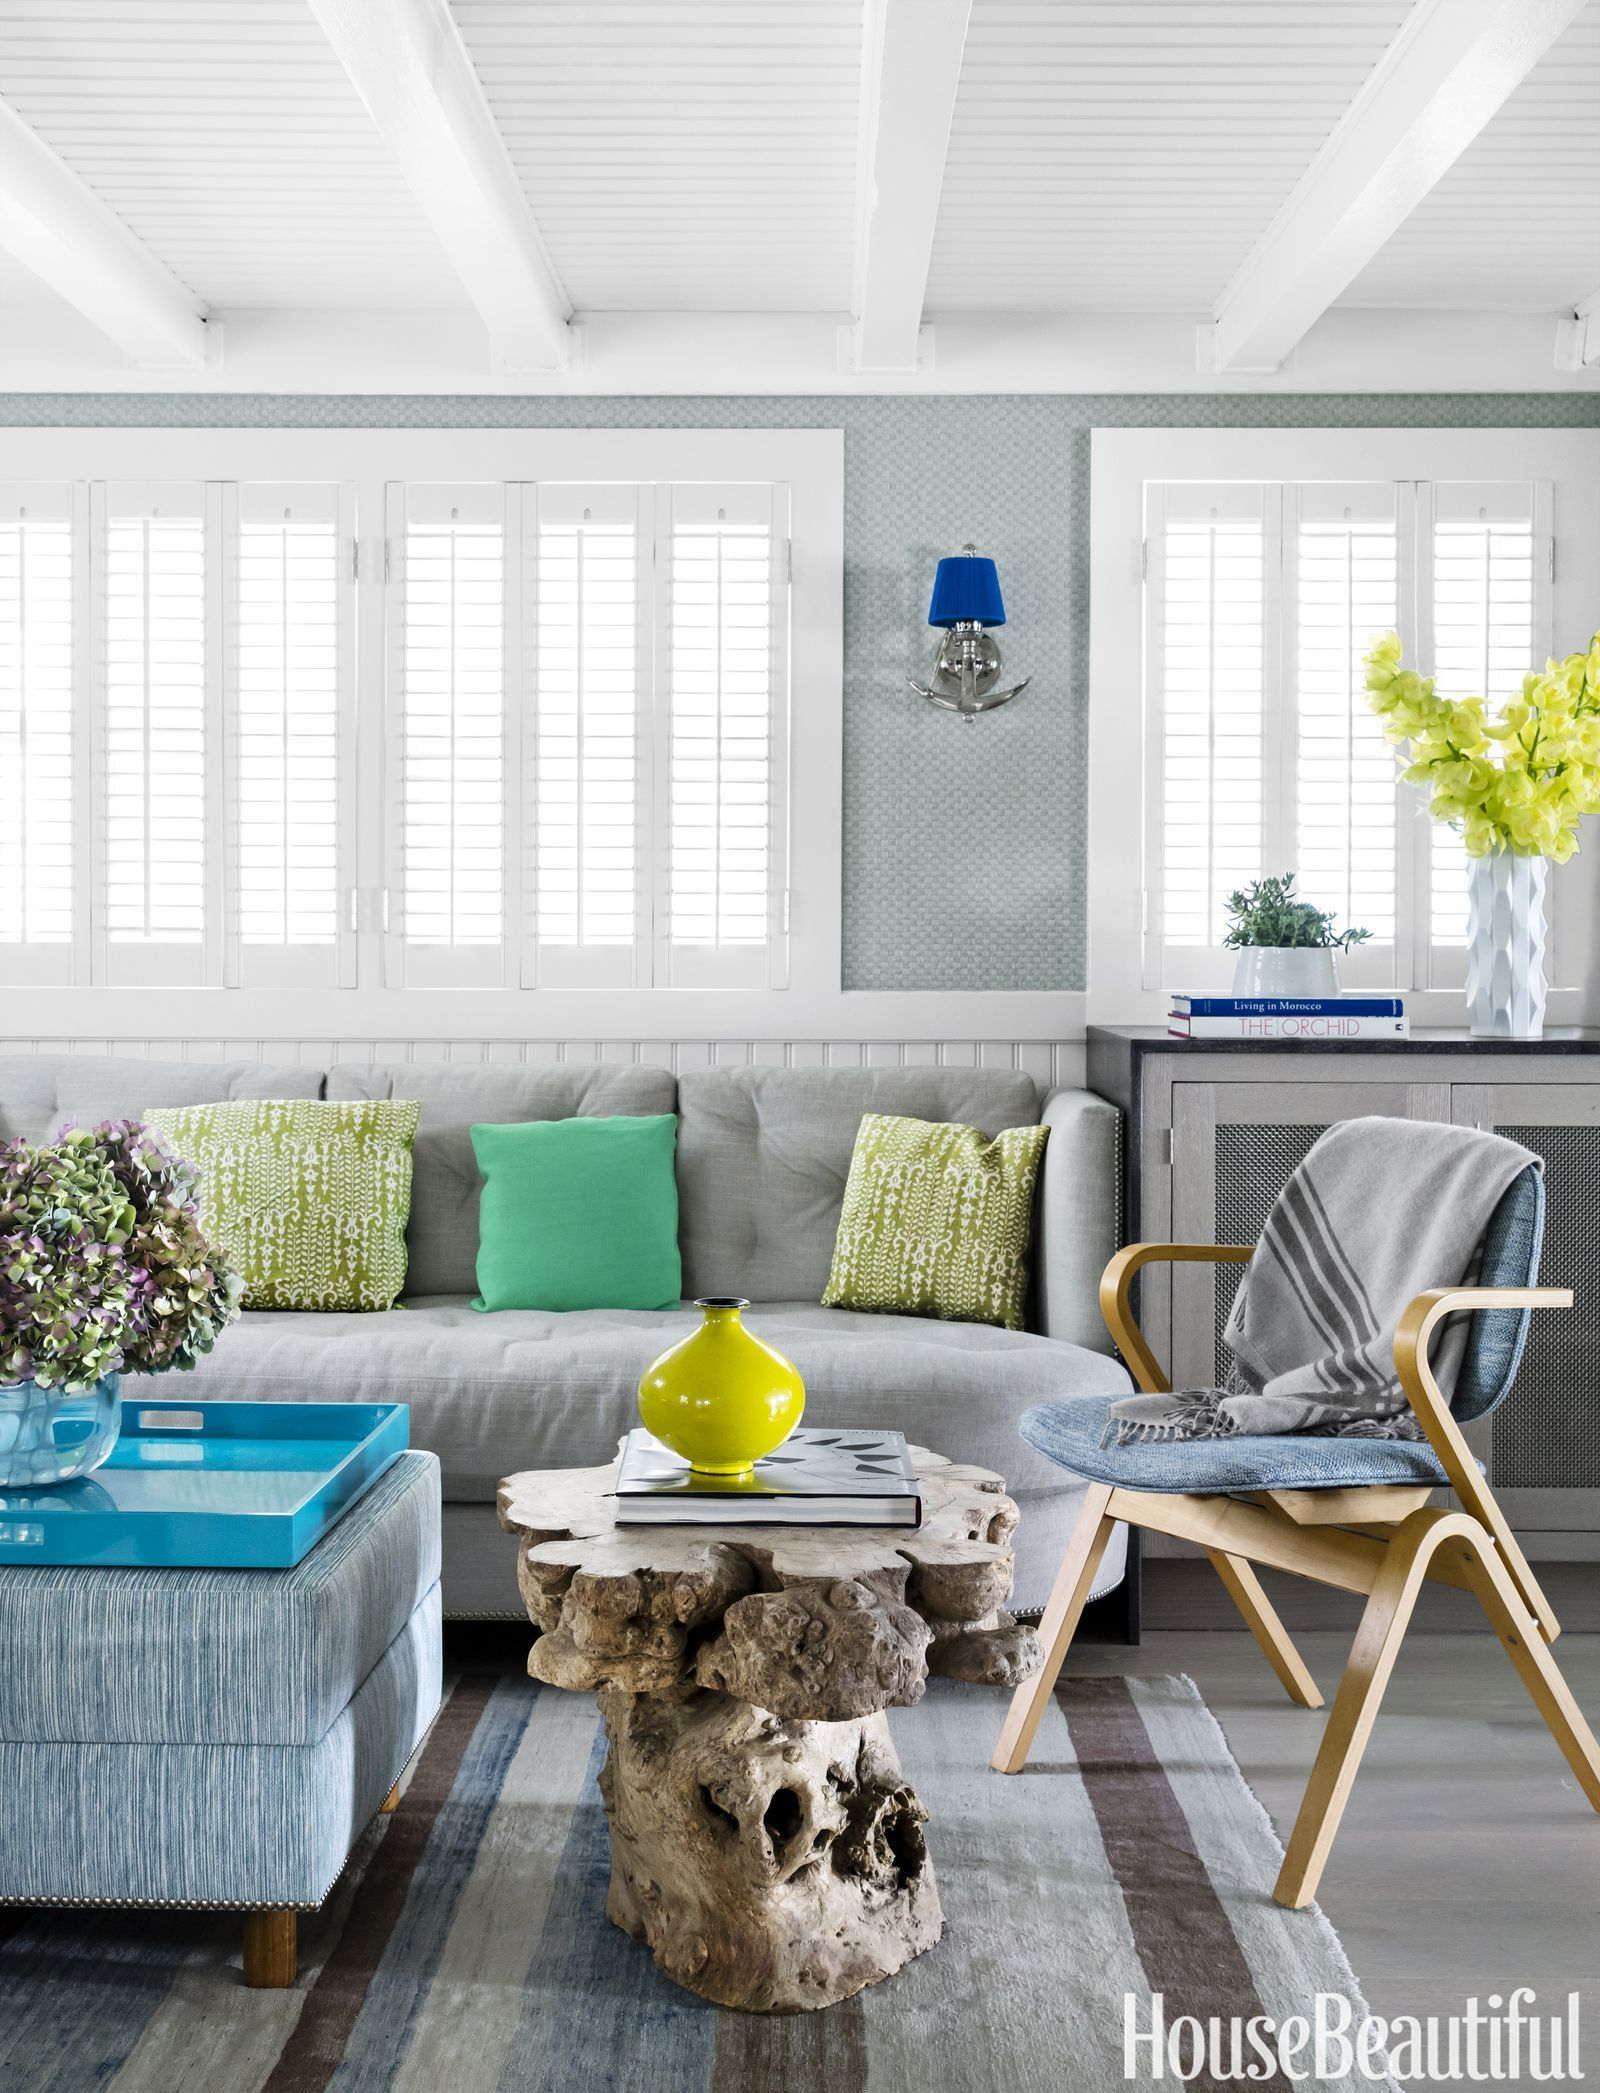 Like shape of couch colors more blue than vivid green like grey blue combo casual but still elegant modern but warm coastallivingrooms